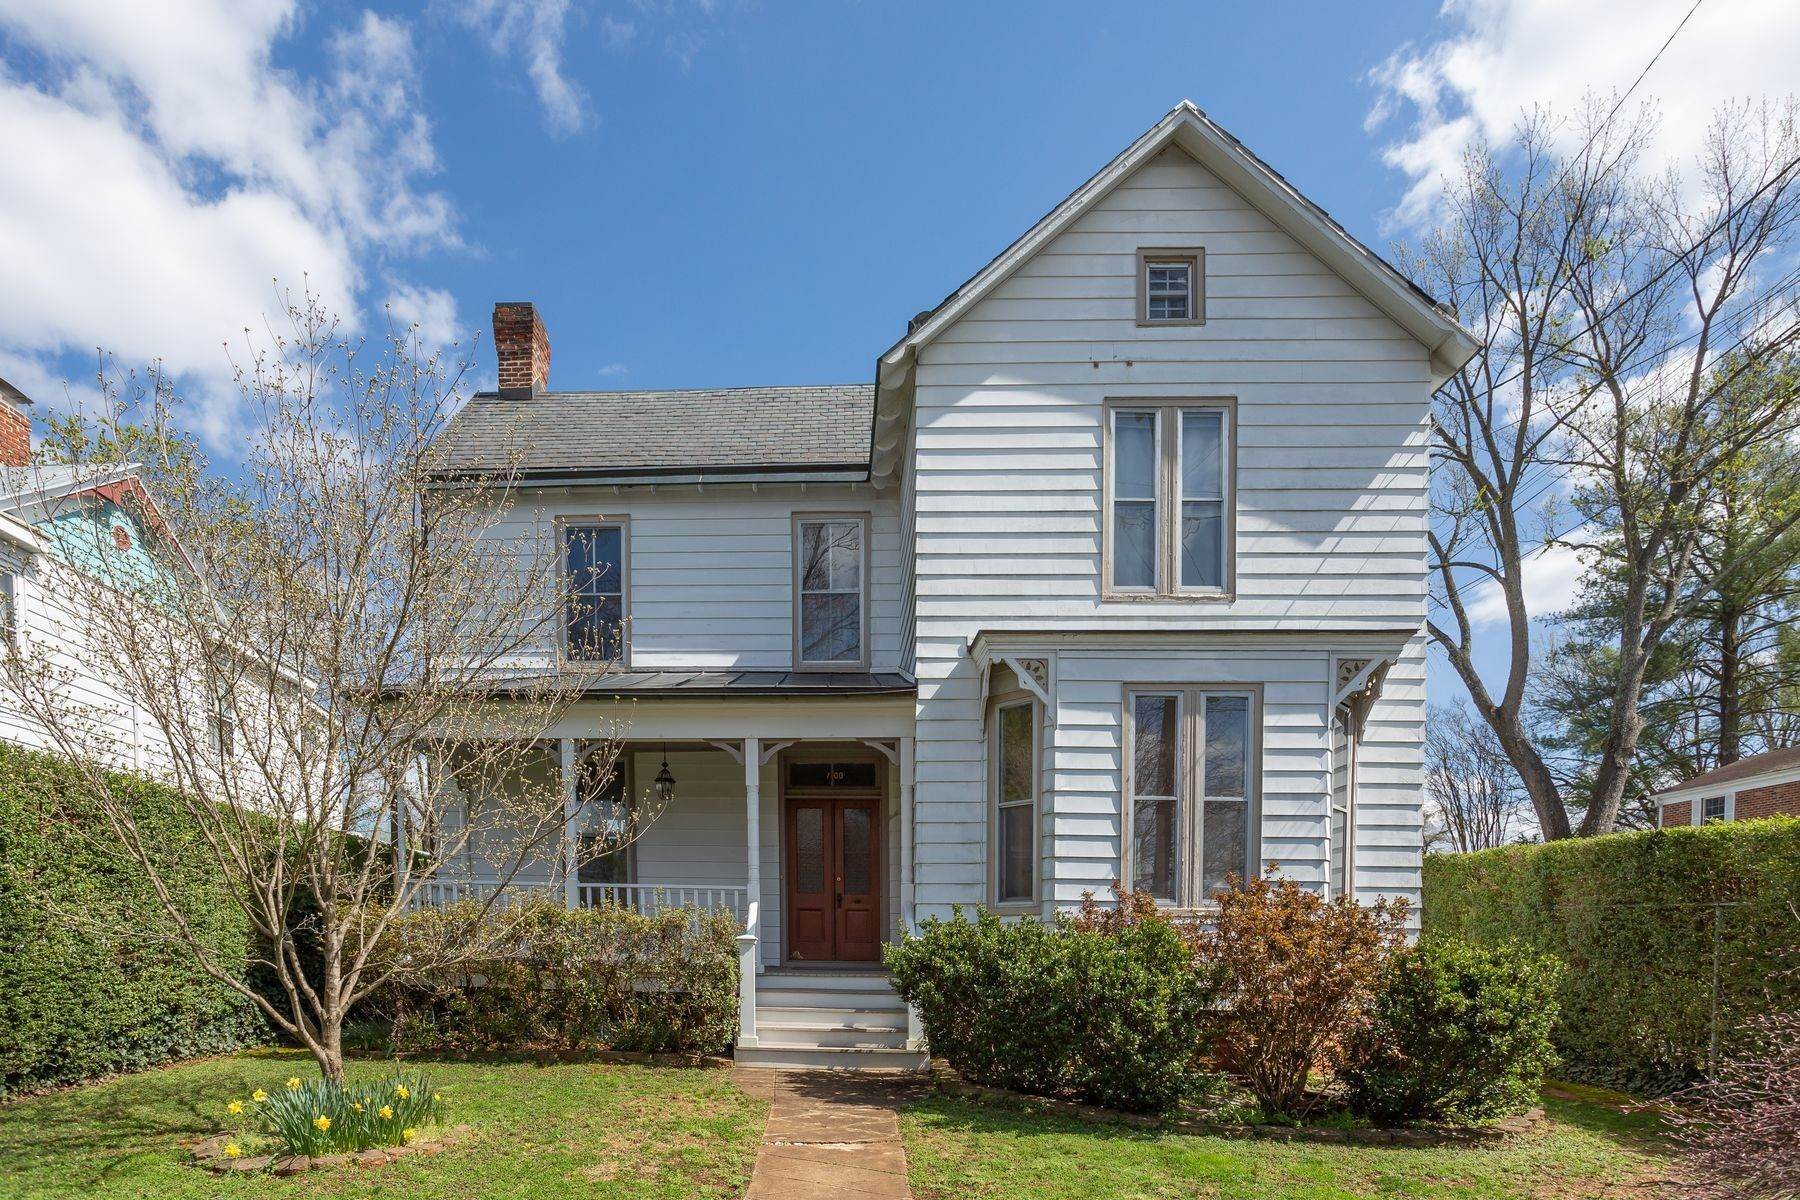 3. Single Family Homes for Sale at 700 Locust Ave Charlottesville, Virginia 22902 United States